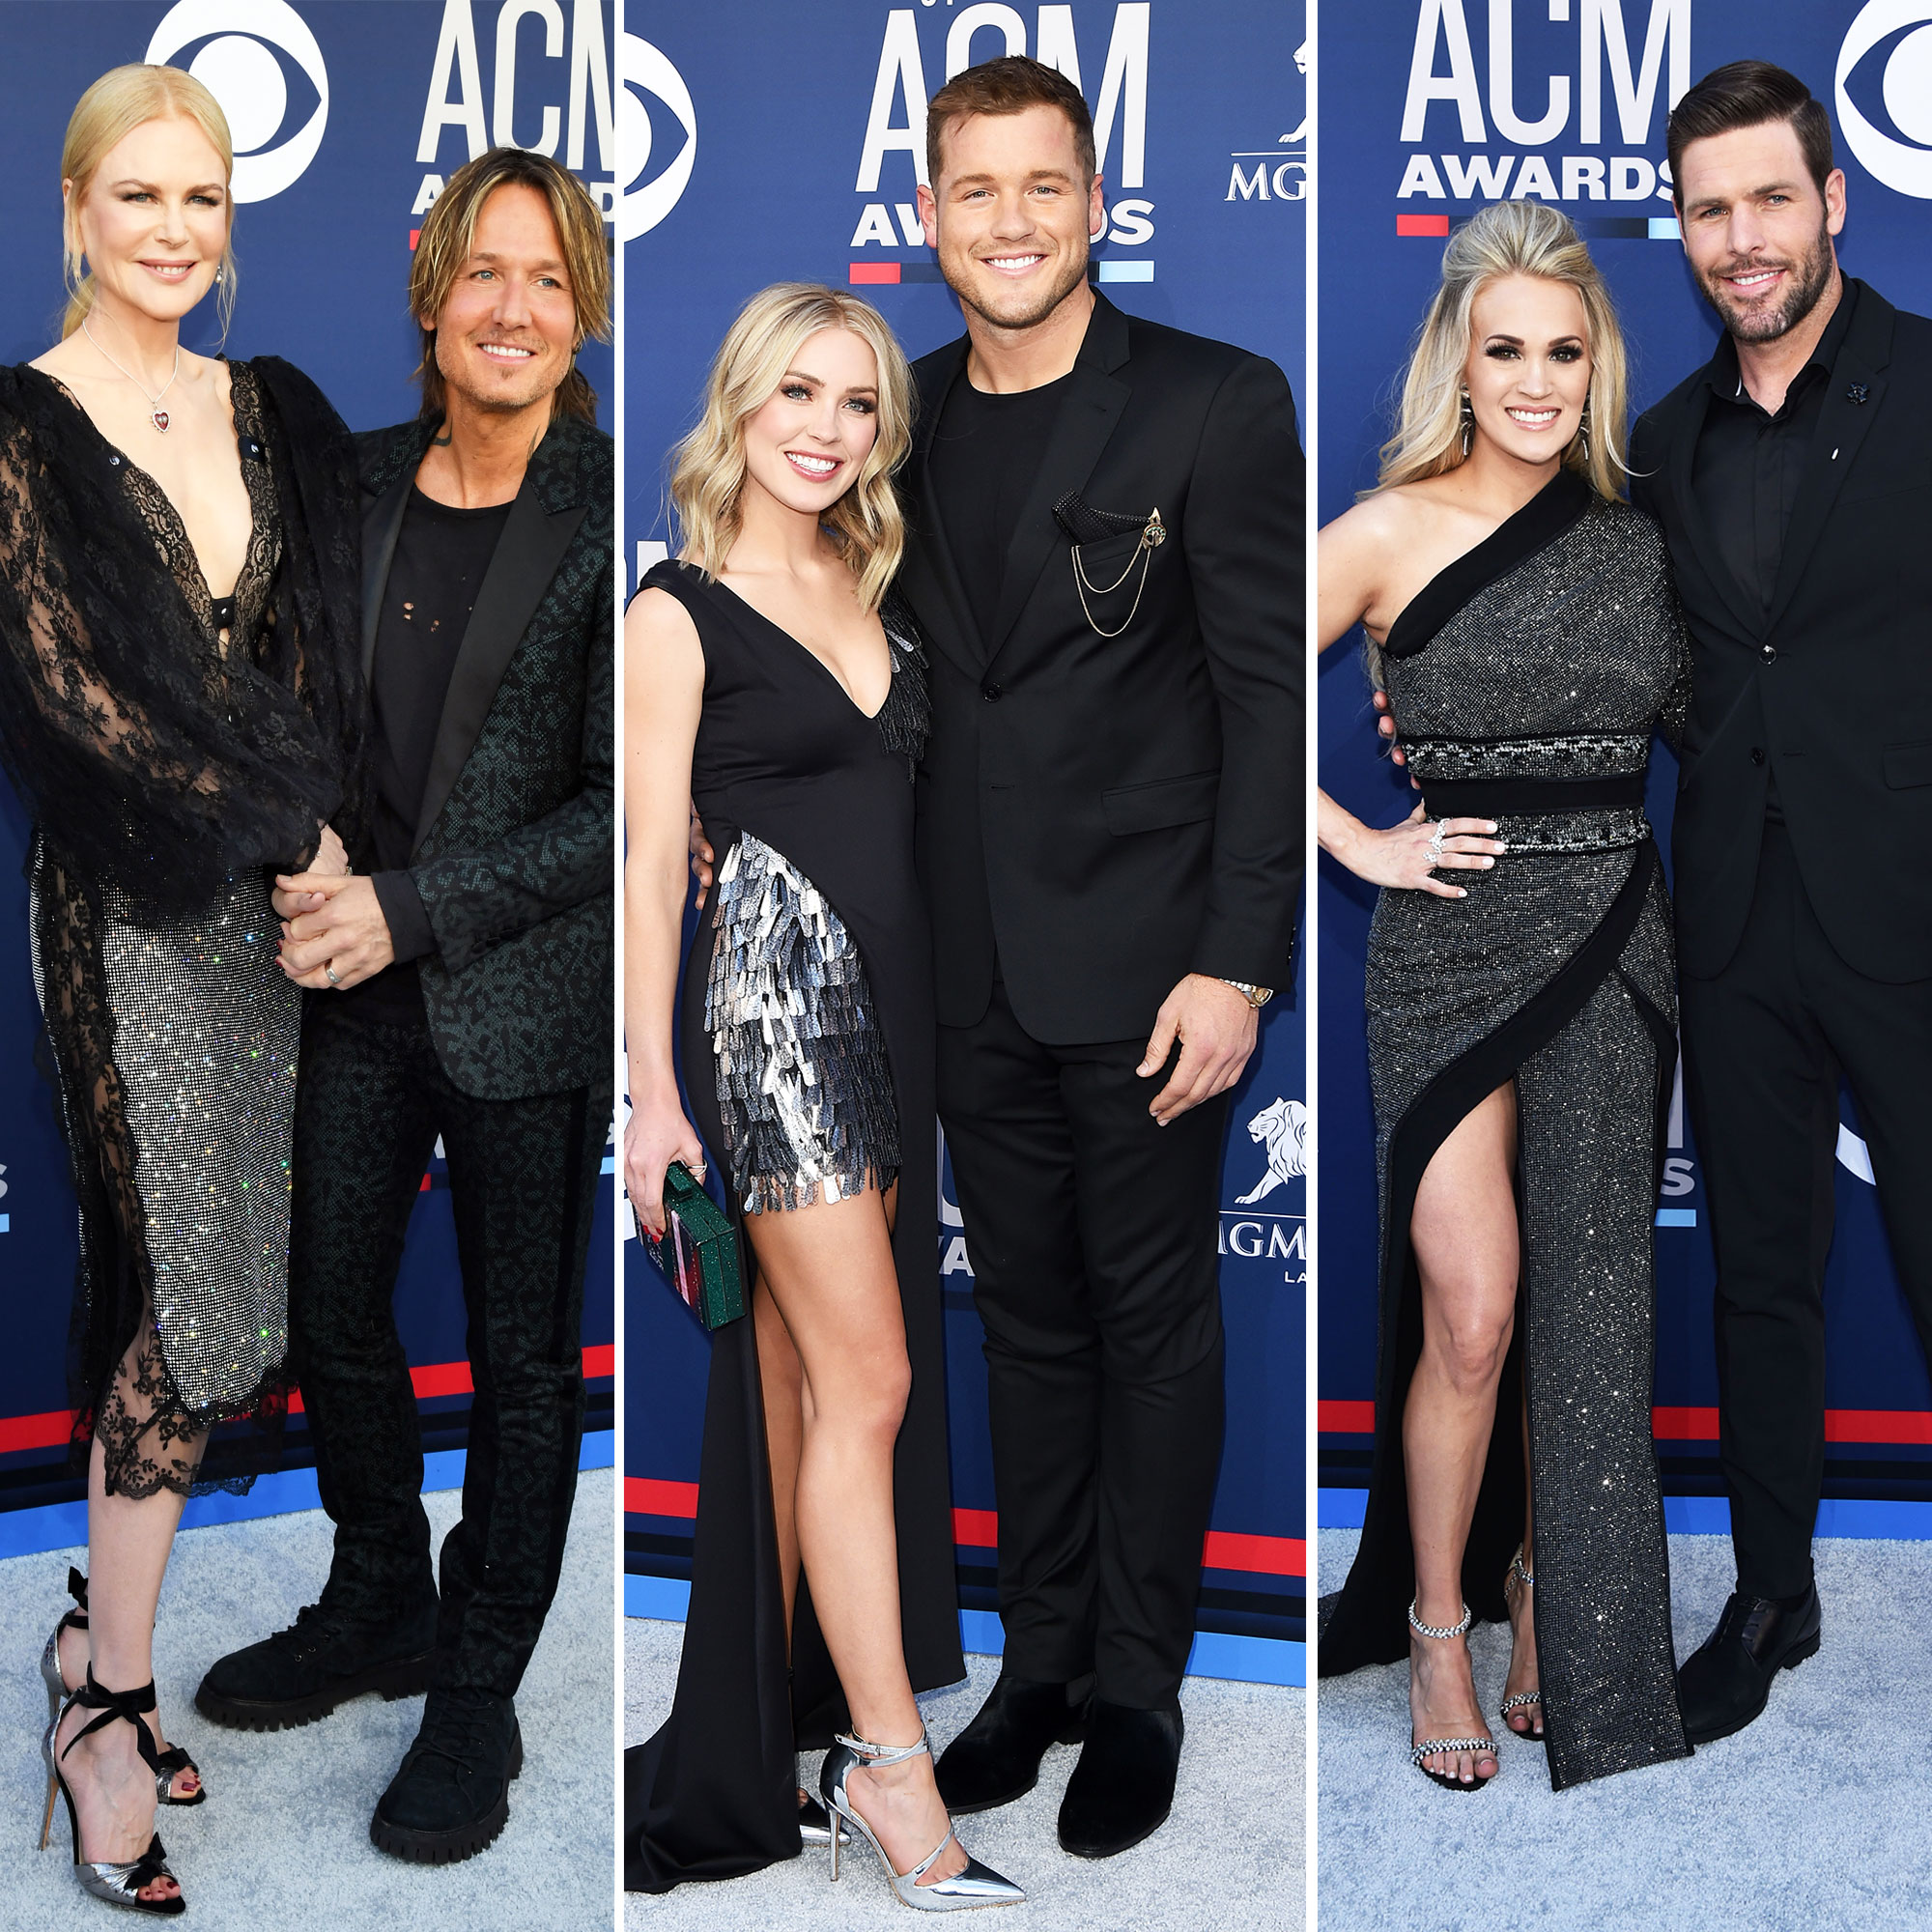 Nicole Kidman, Keith Urban, Cassie Randolph, Colton Underwood, Carrie Underwood and Mike Fisher Smoking Hot Couples Style at the ACMs - Nicole Kidman, Keith Urban, Cassie Randolph, Colton Underwood, Carrie Underwood and Mike Fisher